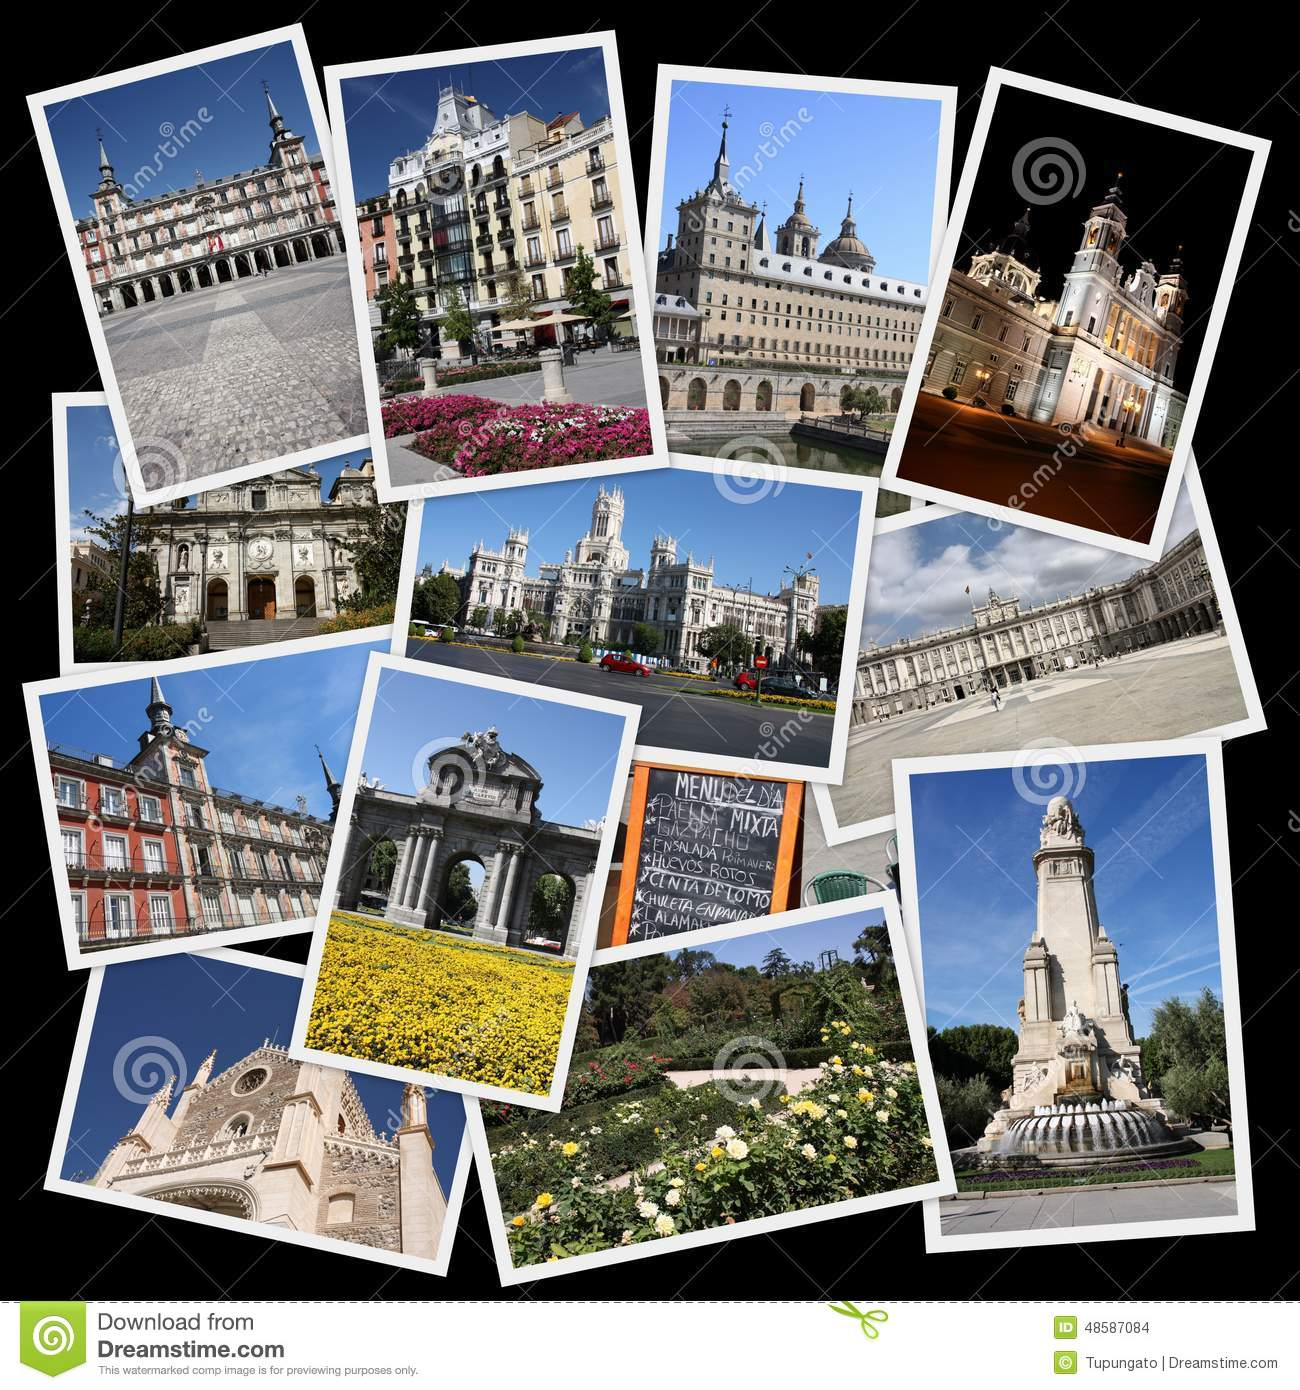 Collage Fotos Collage Landmarks Madrid Spain Stock Images Download 77 Royalty